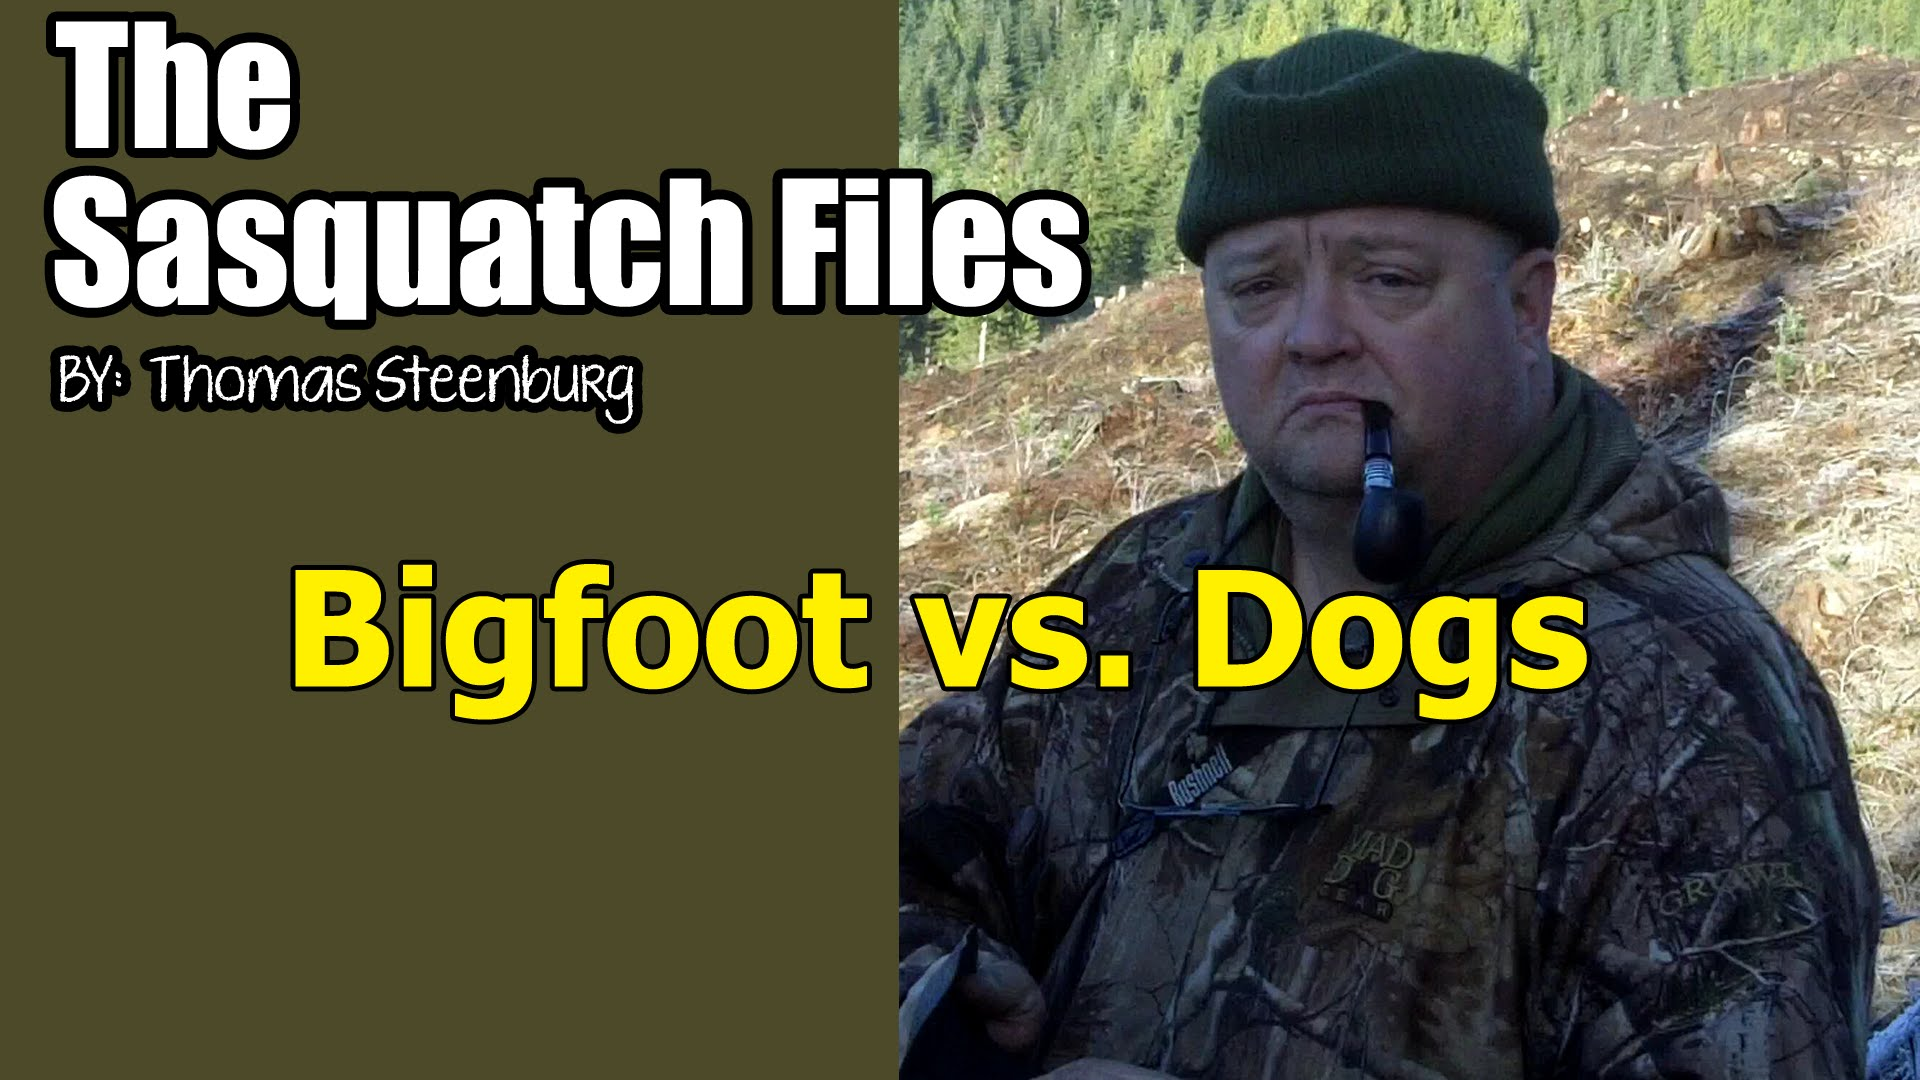 tsf-bigfoot-vs-dogs